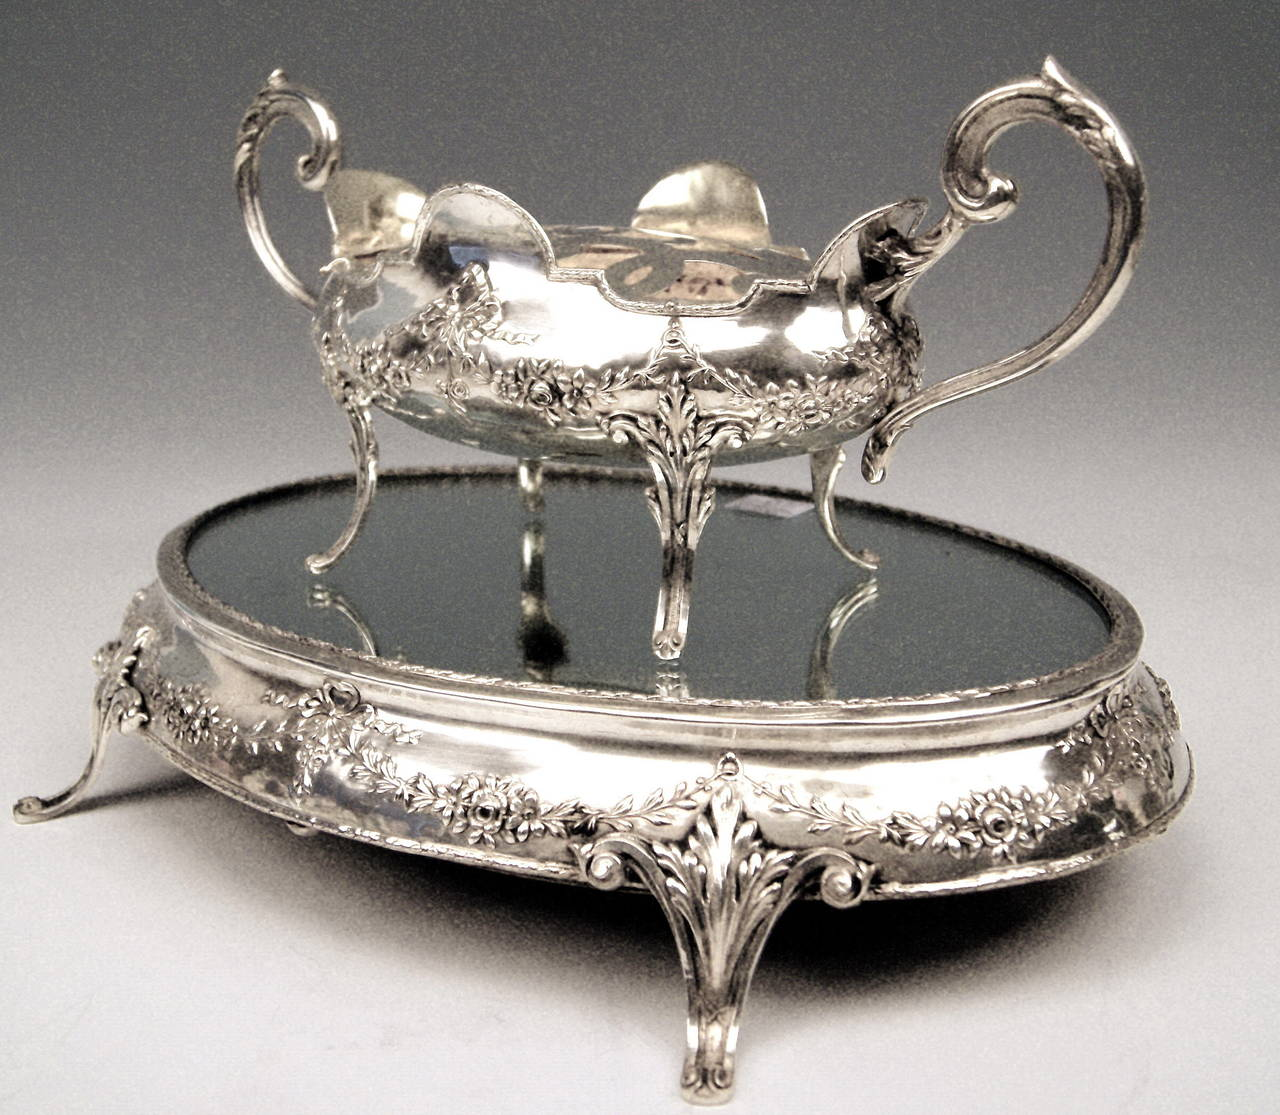 Silver Art Nouveau Rare Flower Bowl with Large Oval Support Made in Porto, 1900 5